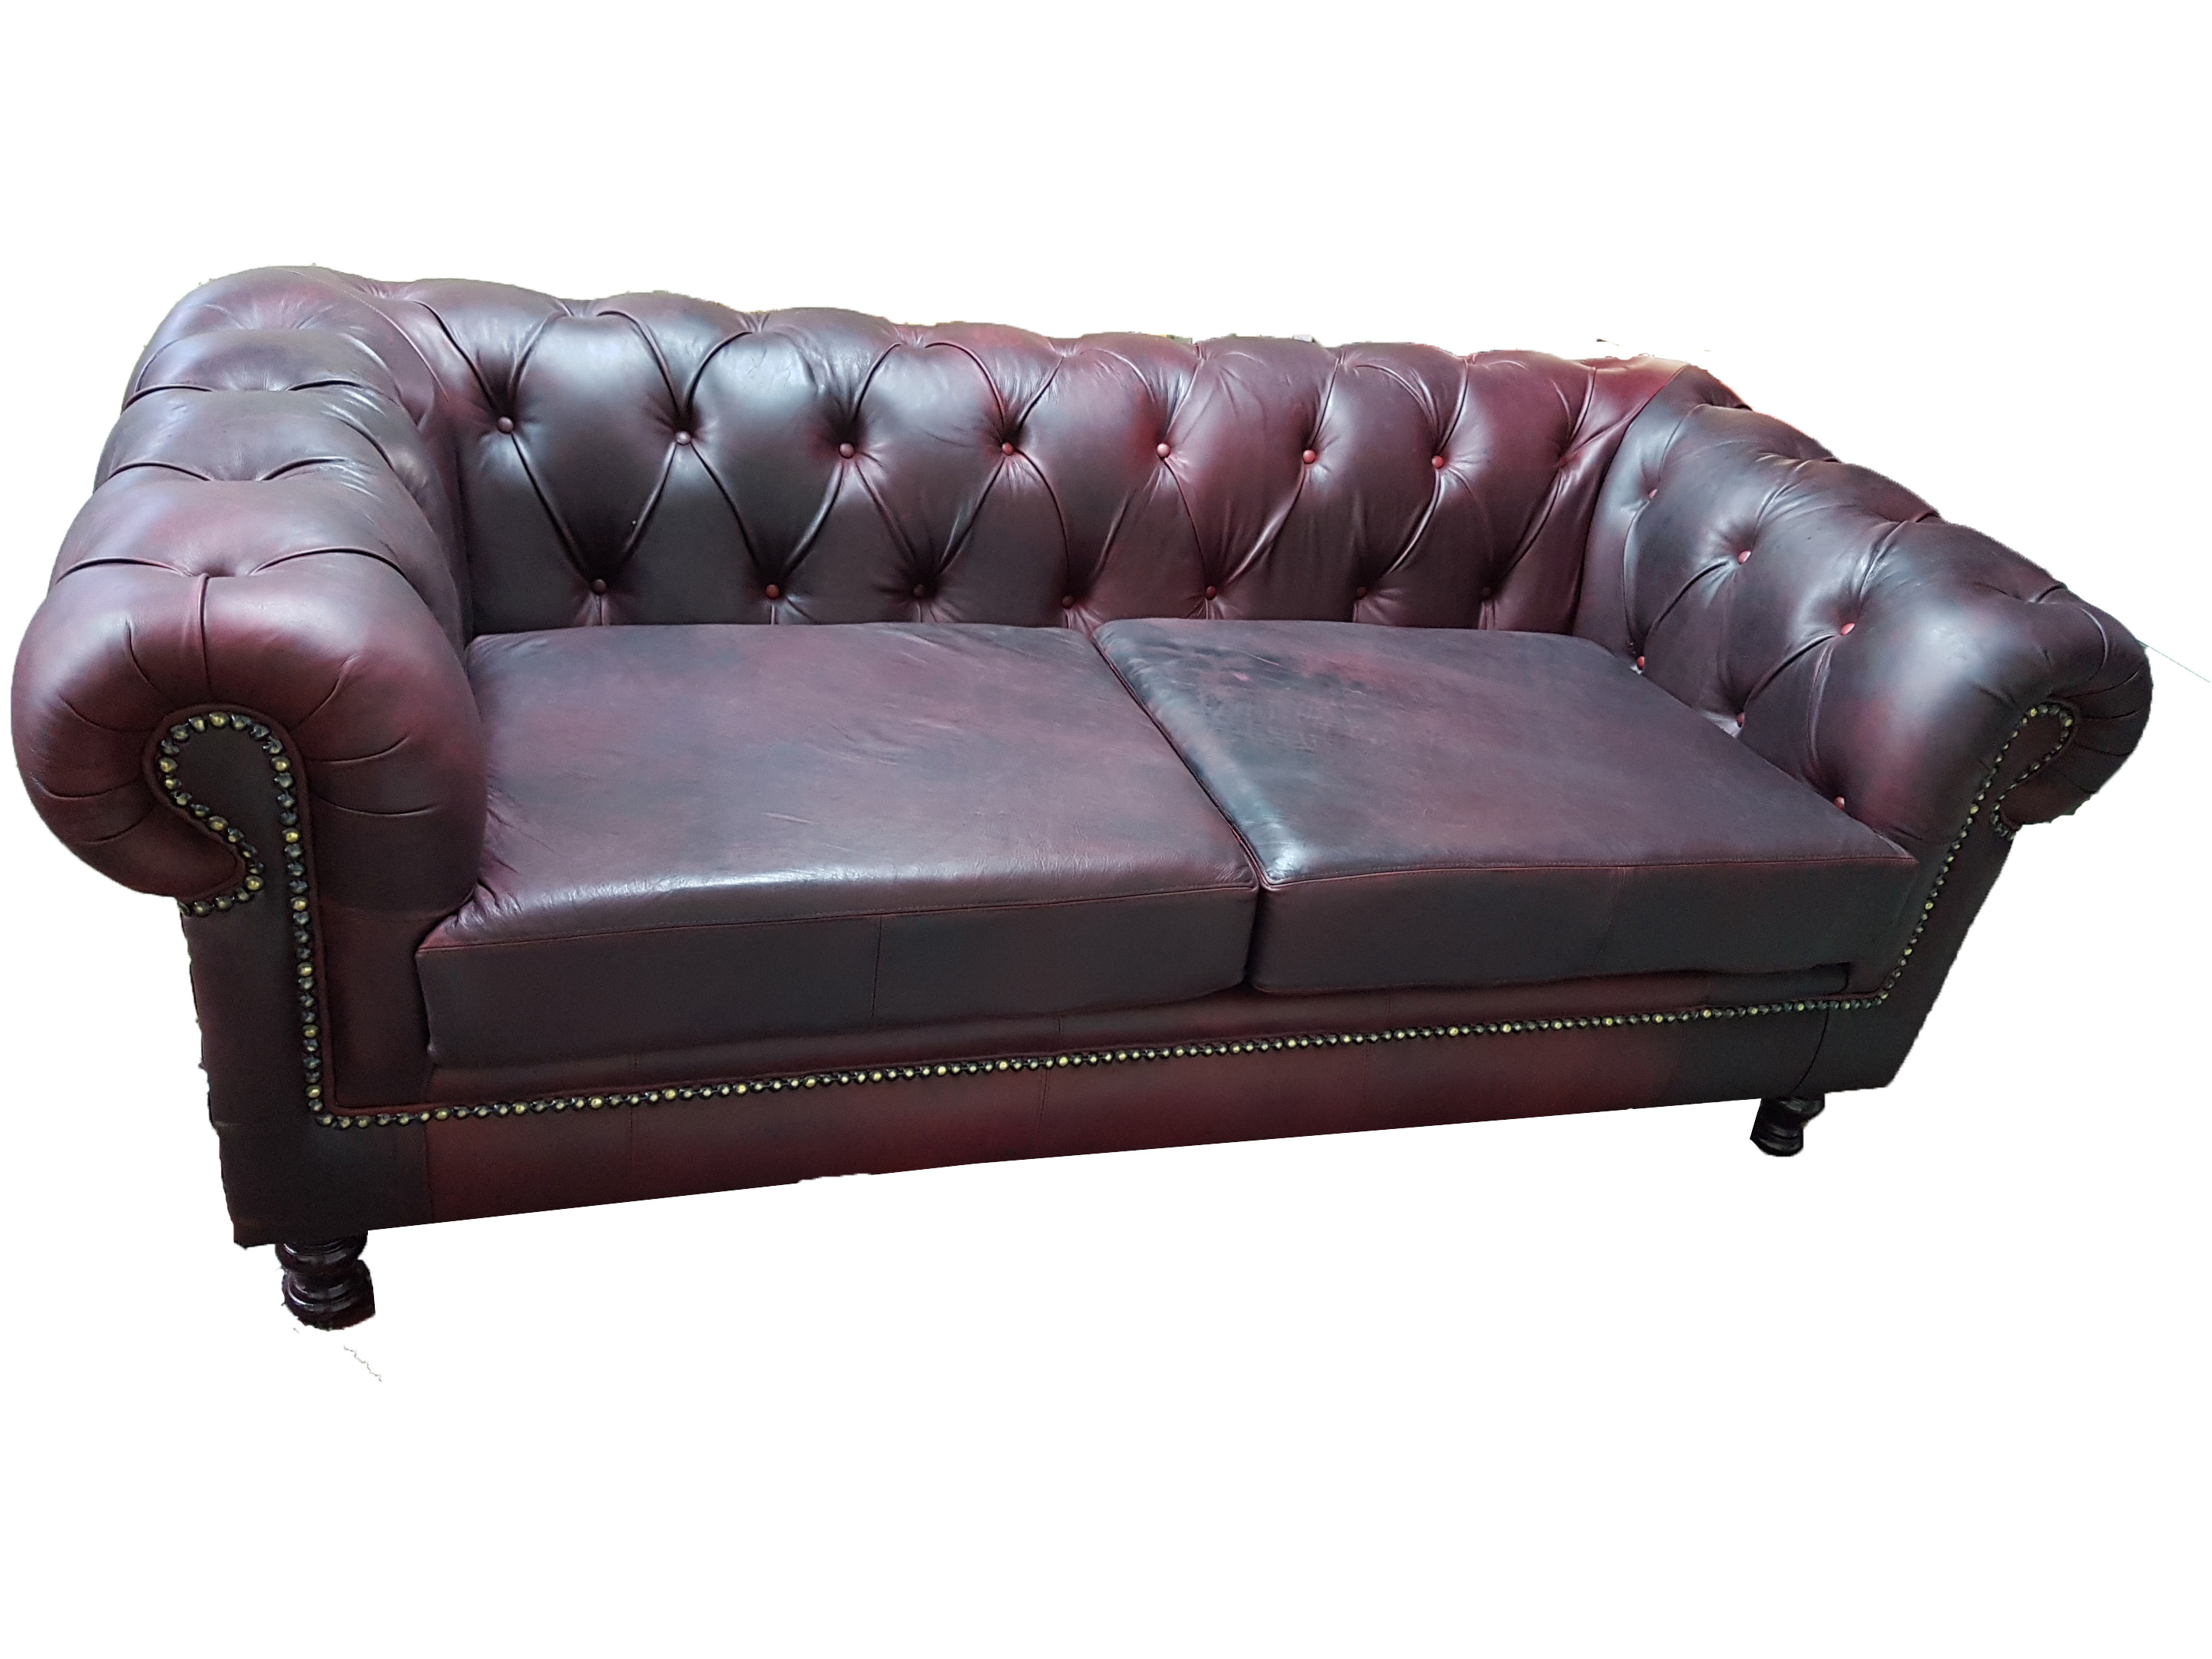 Utterly Fabulous Antique Red Leather Chesterfield Couches Big Bucks